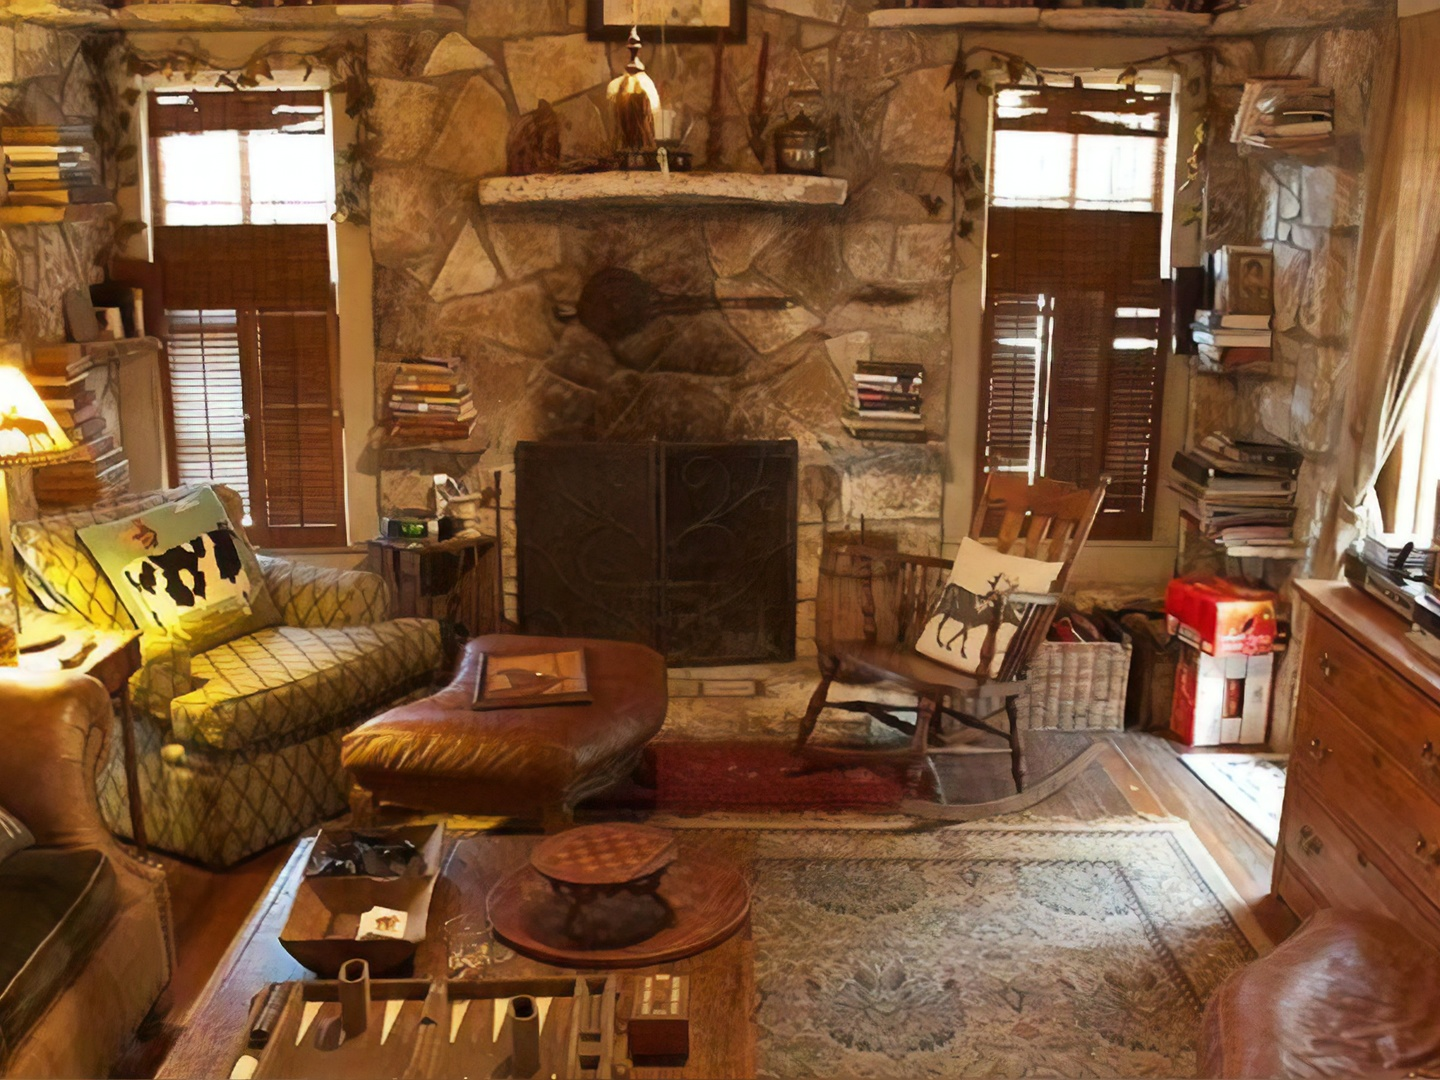 A living room filled with furniture and a fire place at Country Woods Inn.